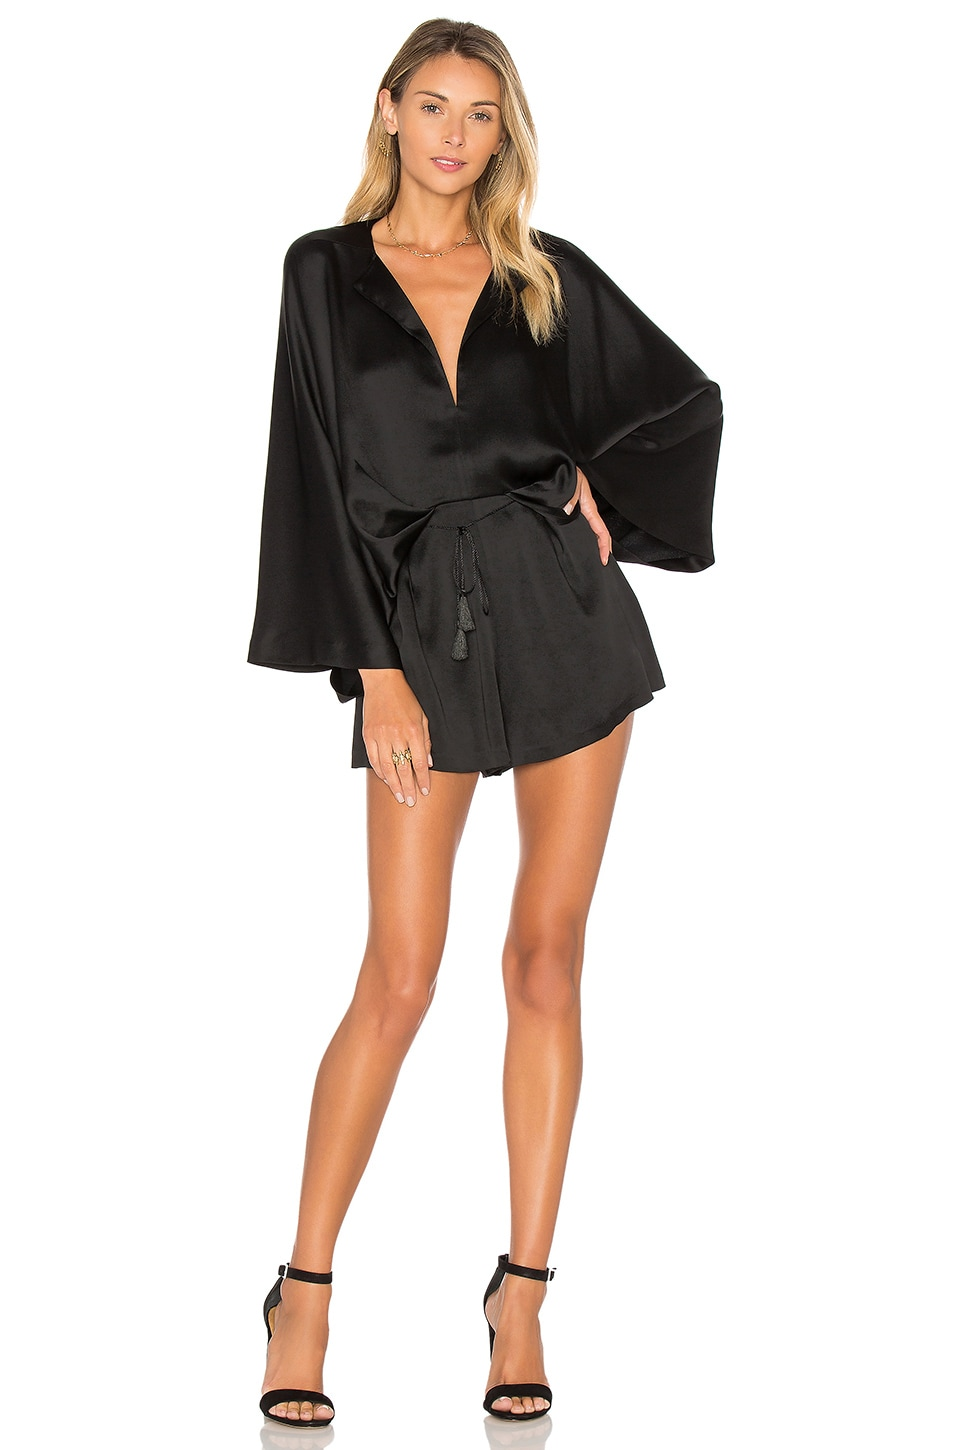 Knox Romper by Acler